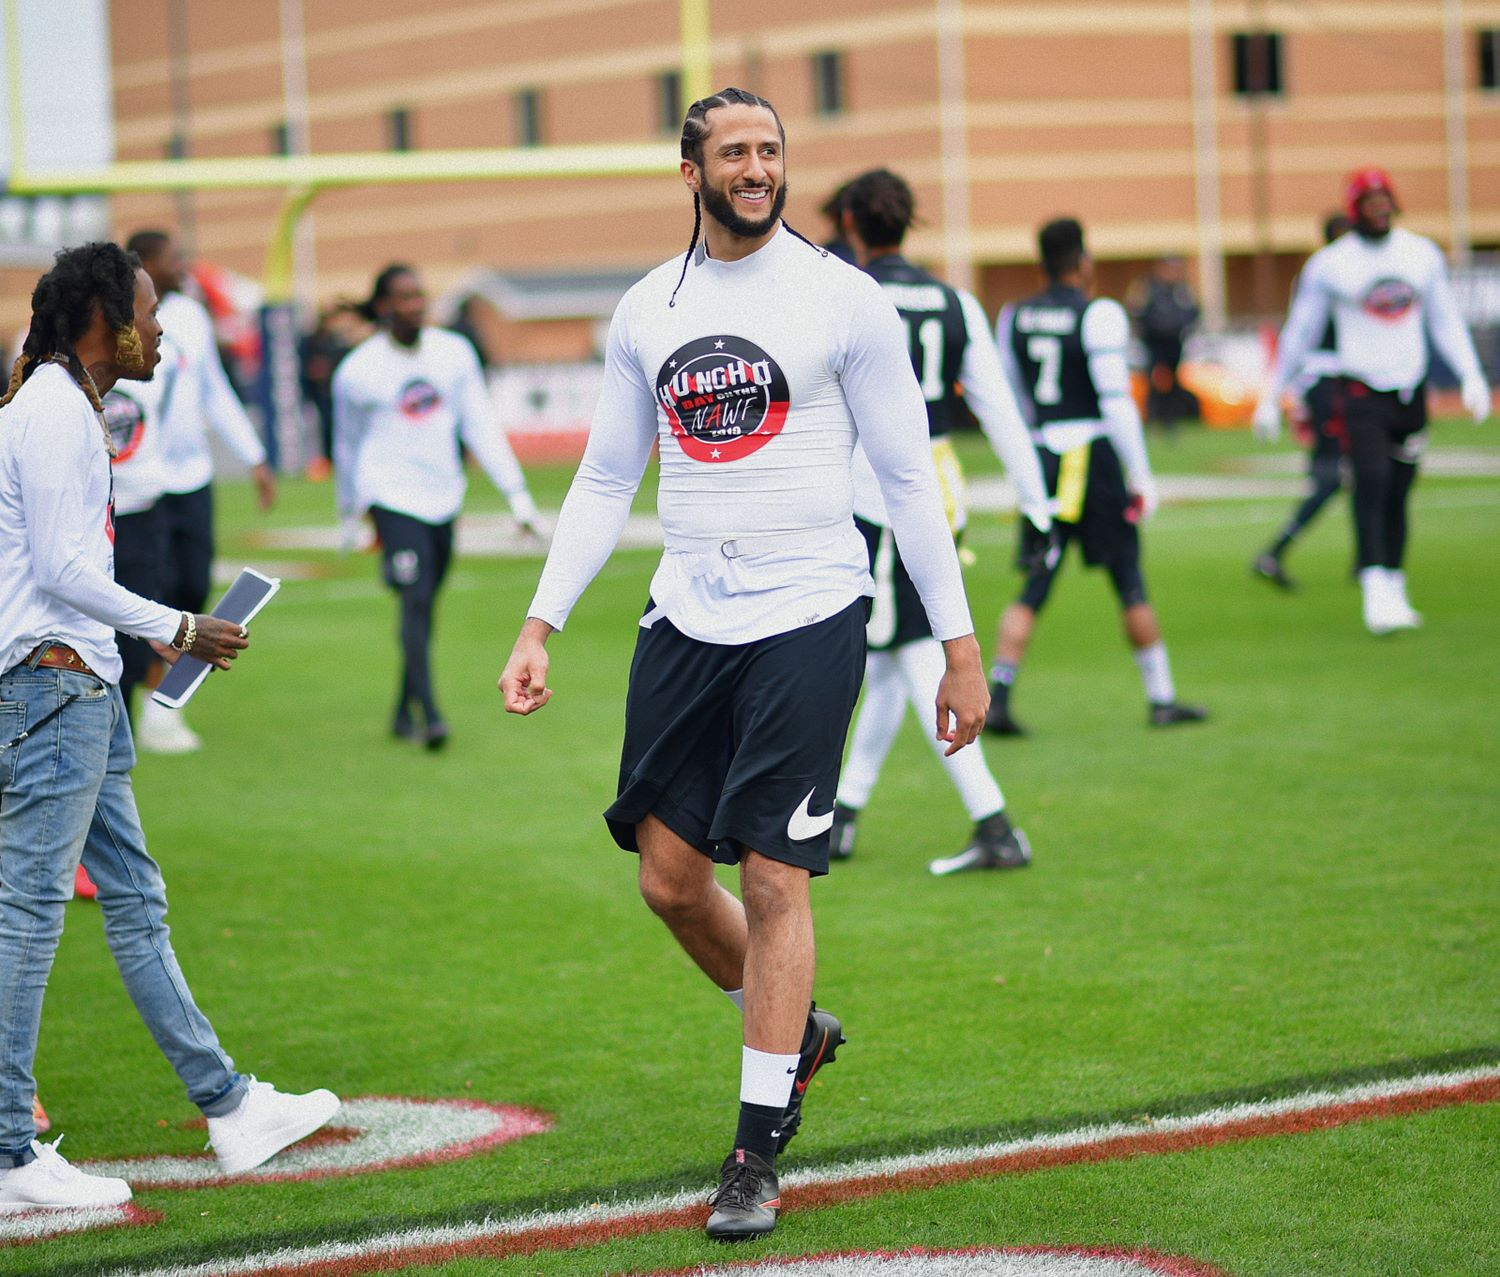 Colin Kaepernick will be inducted into the University of Nevada Athletics Hall of Fame. But will an NFL team give him another chance?